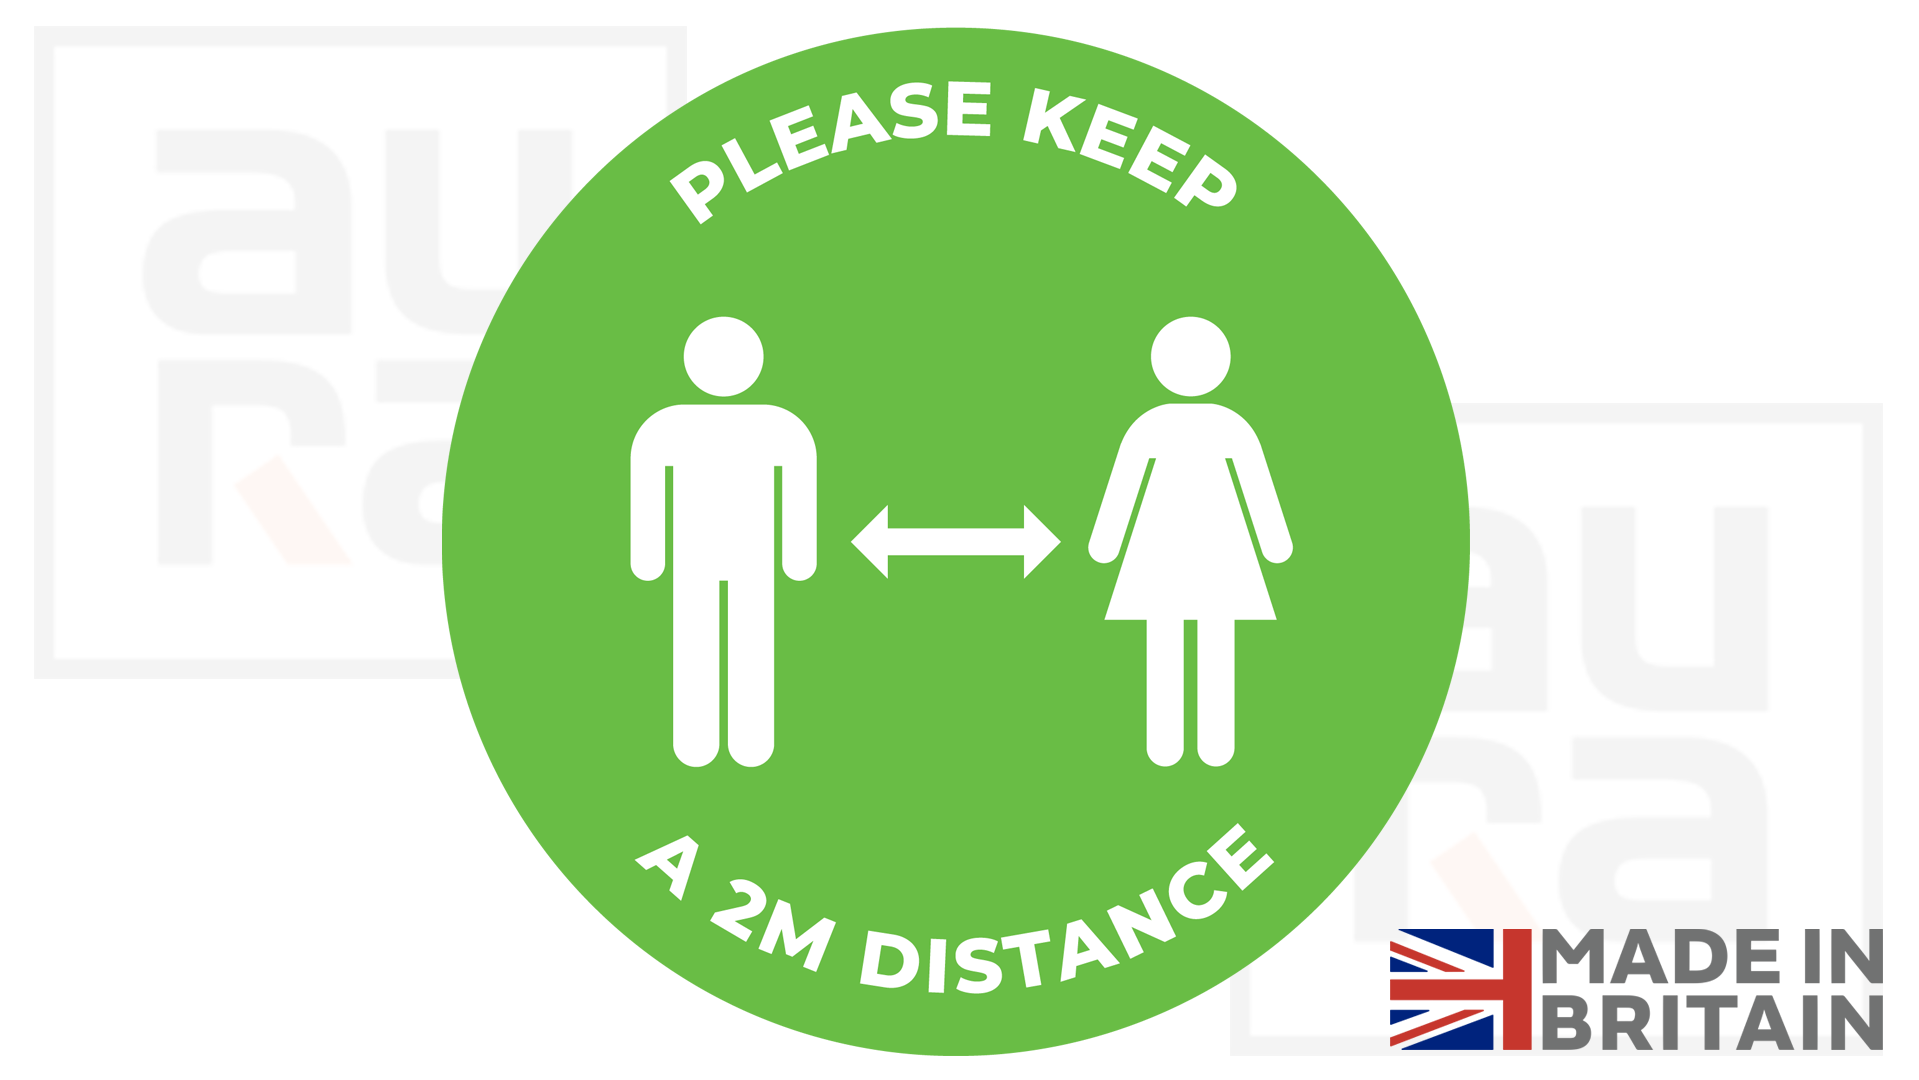 Please keep a 2m distance covid19 social distance shop floor sticker for business